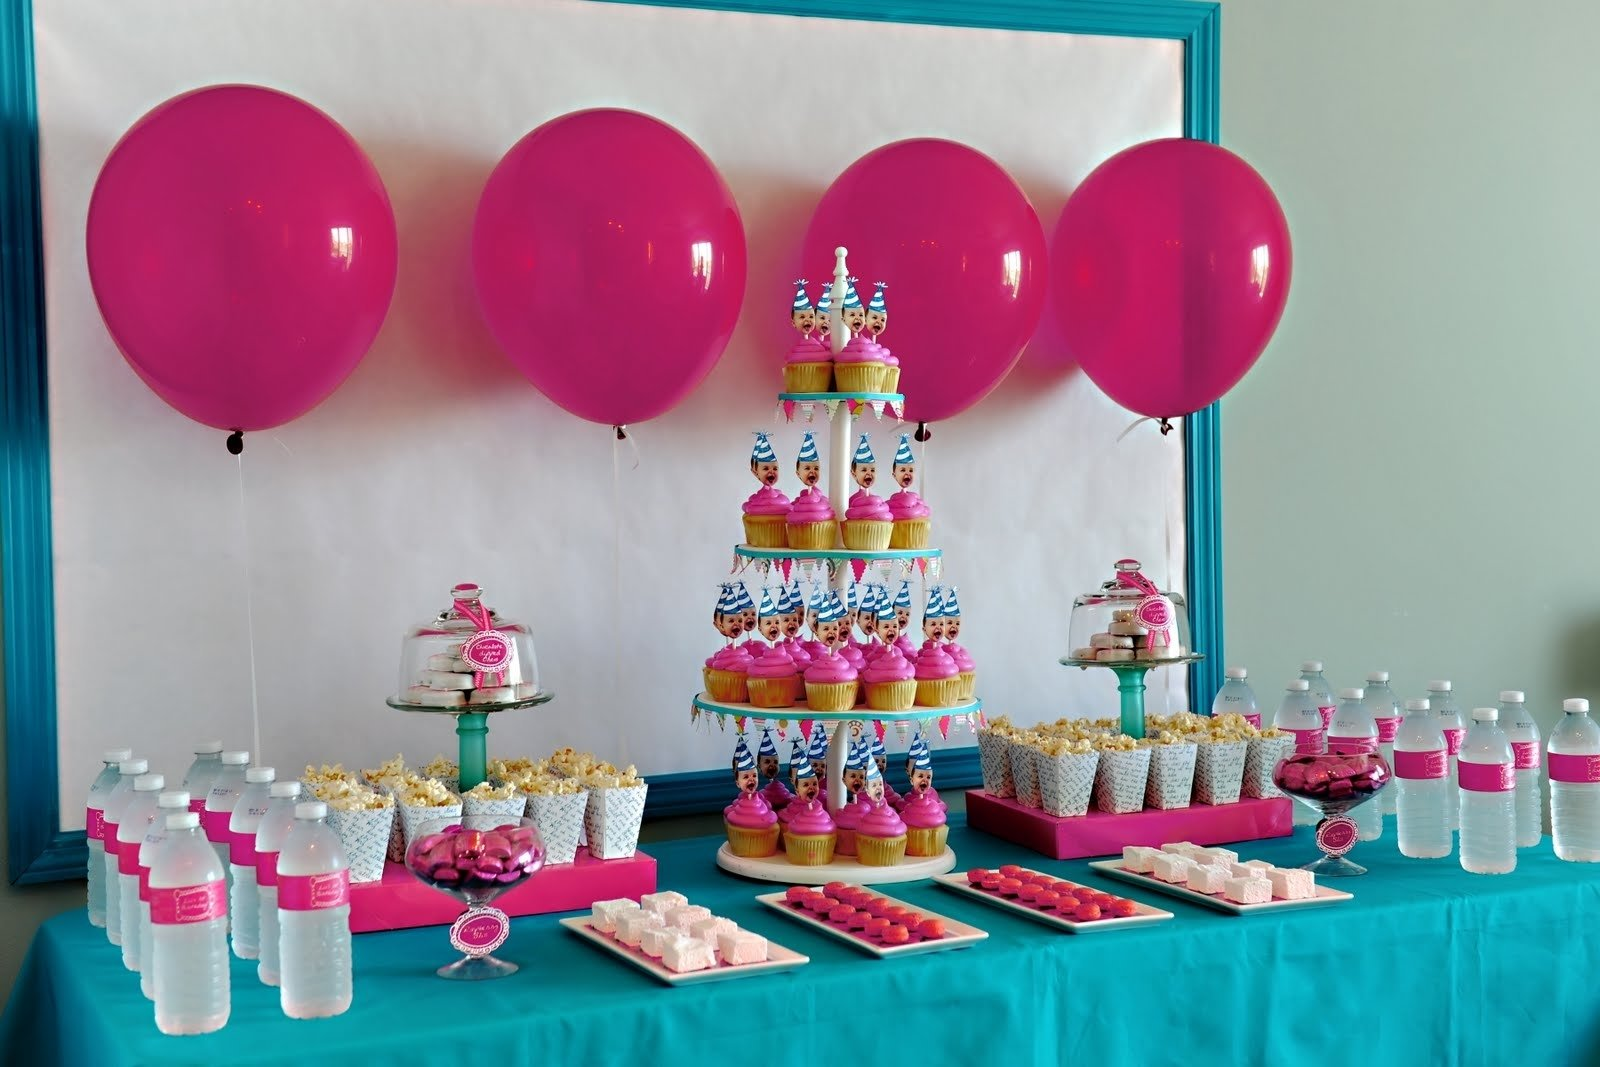 10 Beautiful One Year Old Party Ideas elle belle creative one year old in a flash the dessert table 1 2020